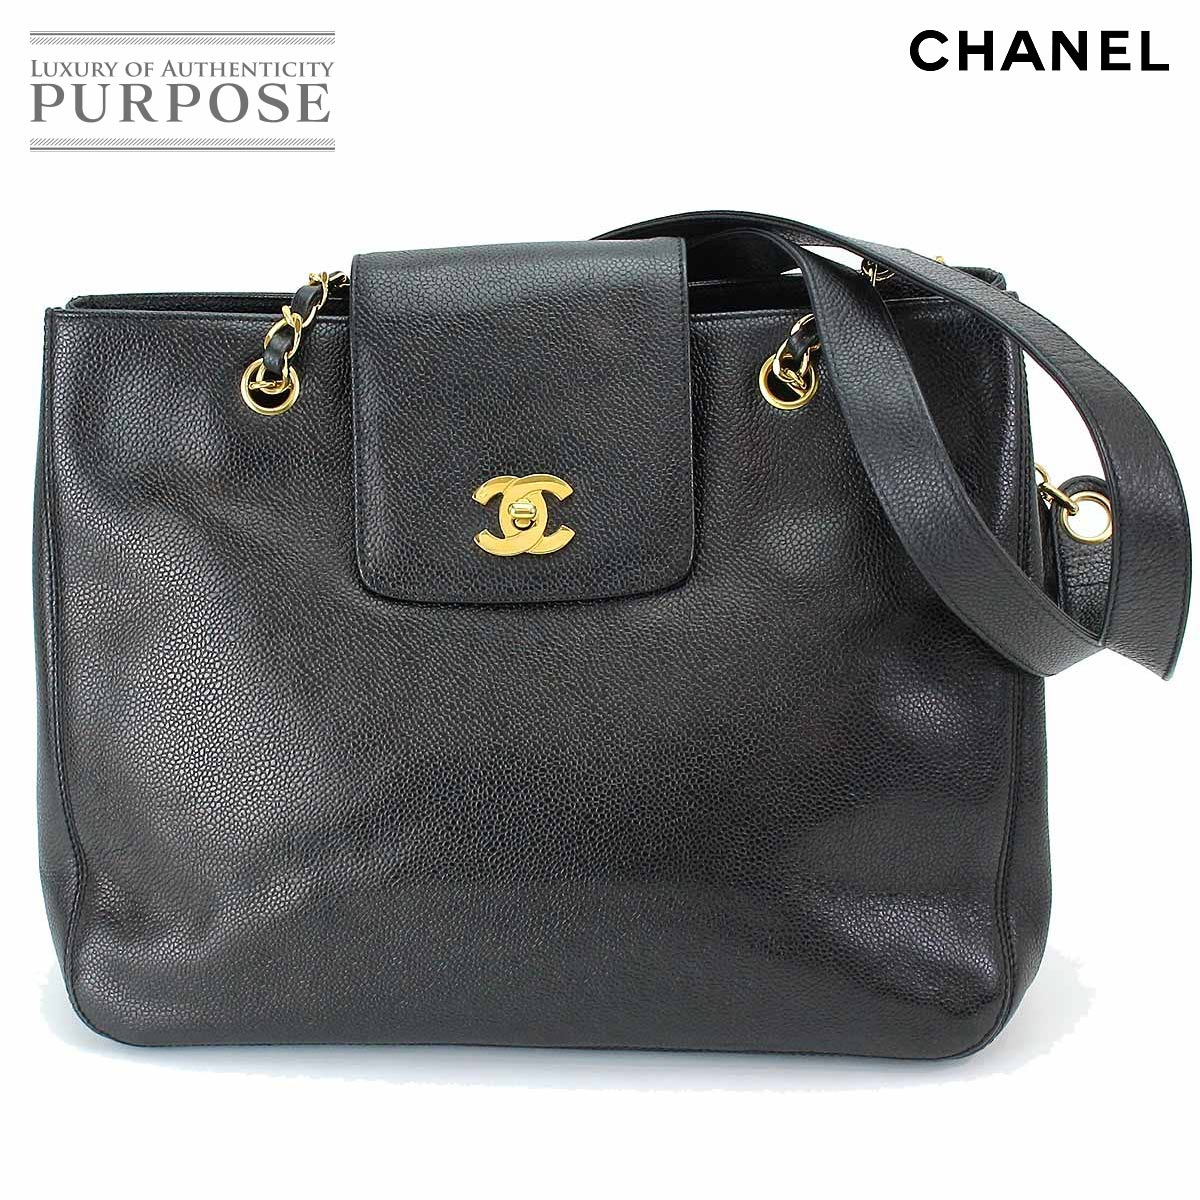 513cdbe3a947 Chanel CHANEL caviar skin chain tote bag black leather gold metal fittings  vintage  used  brand